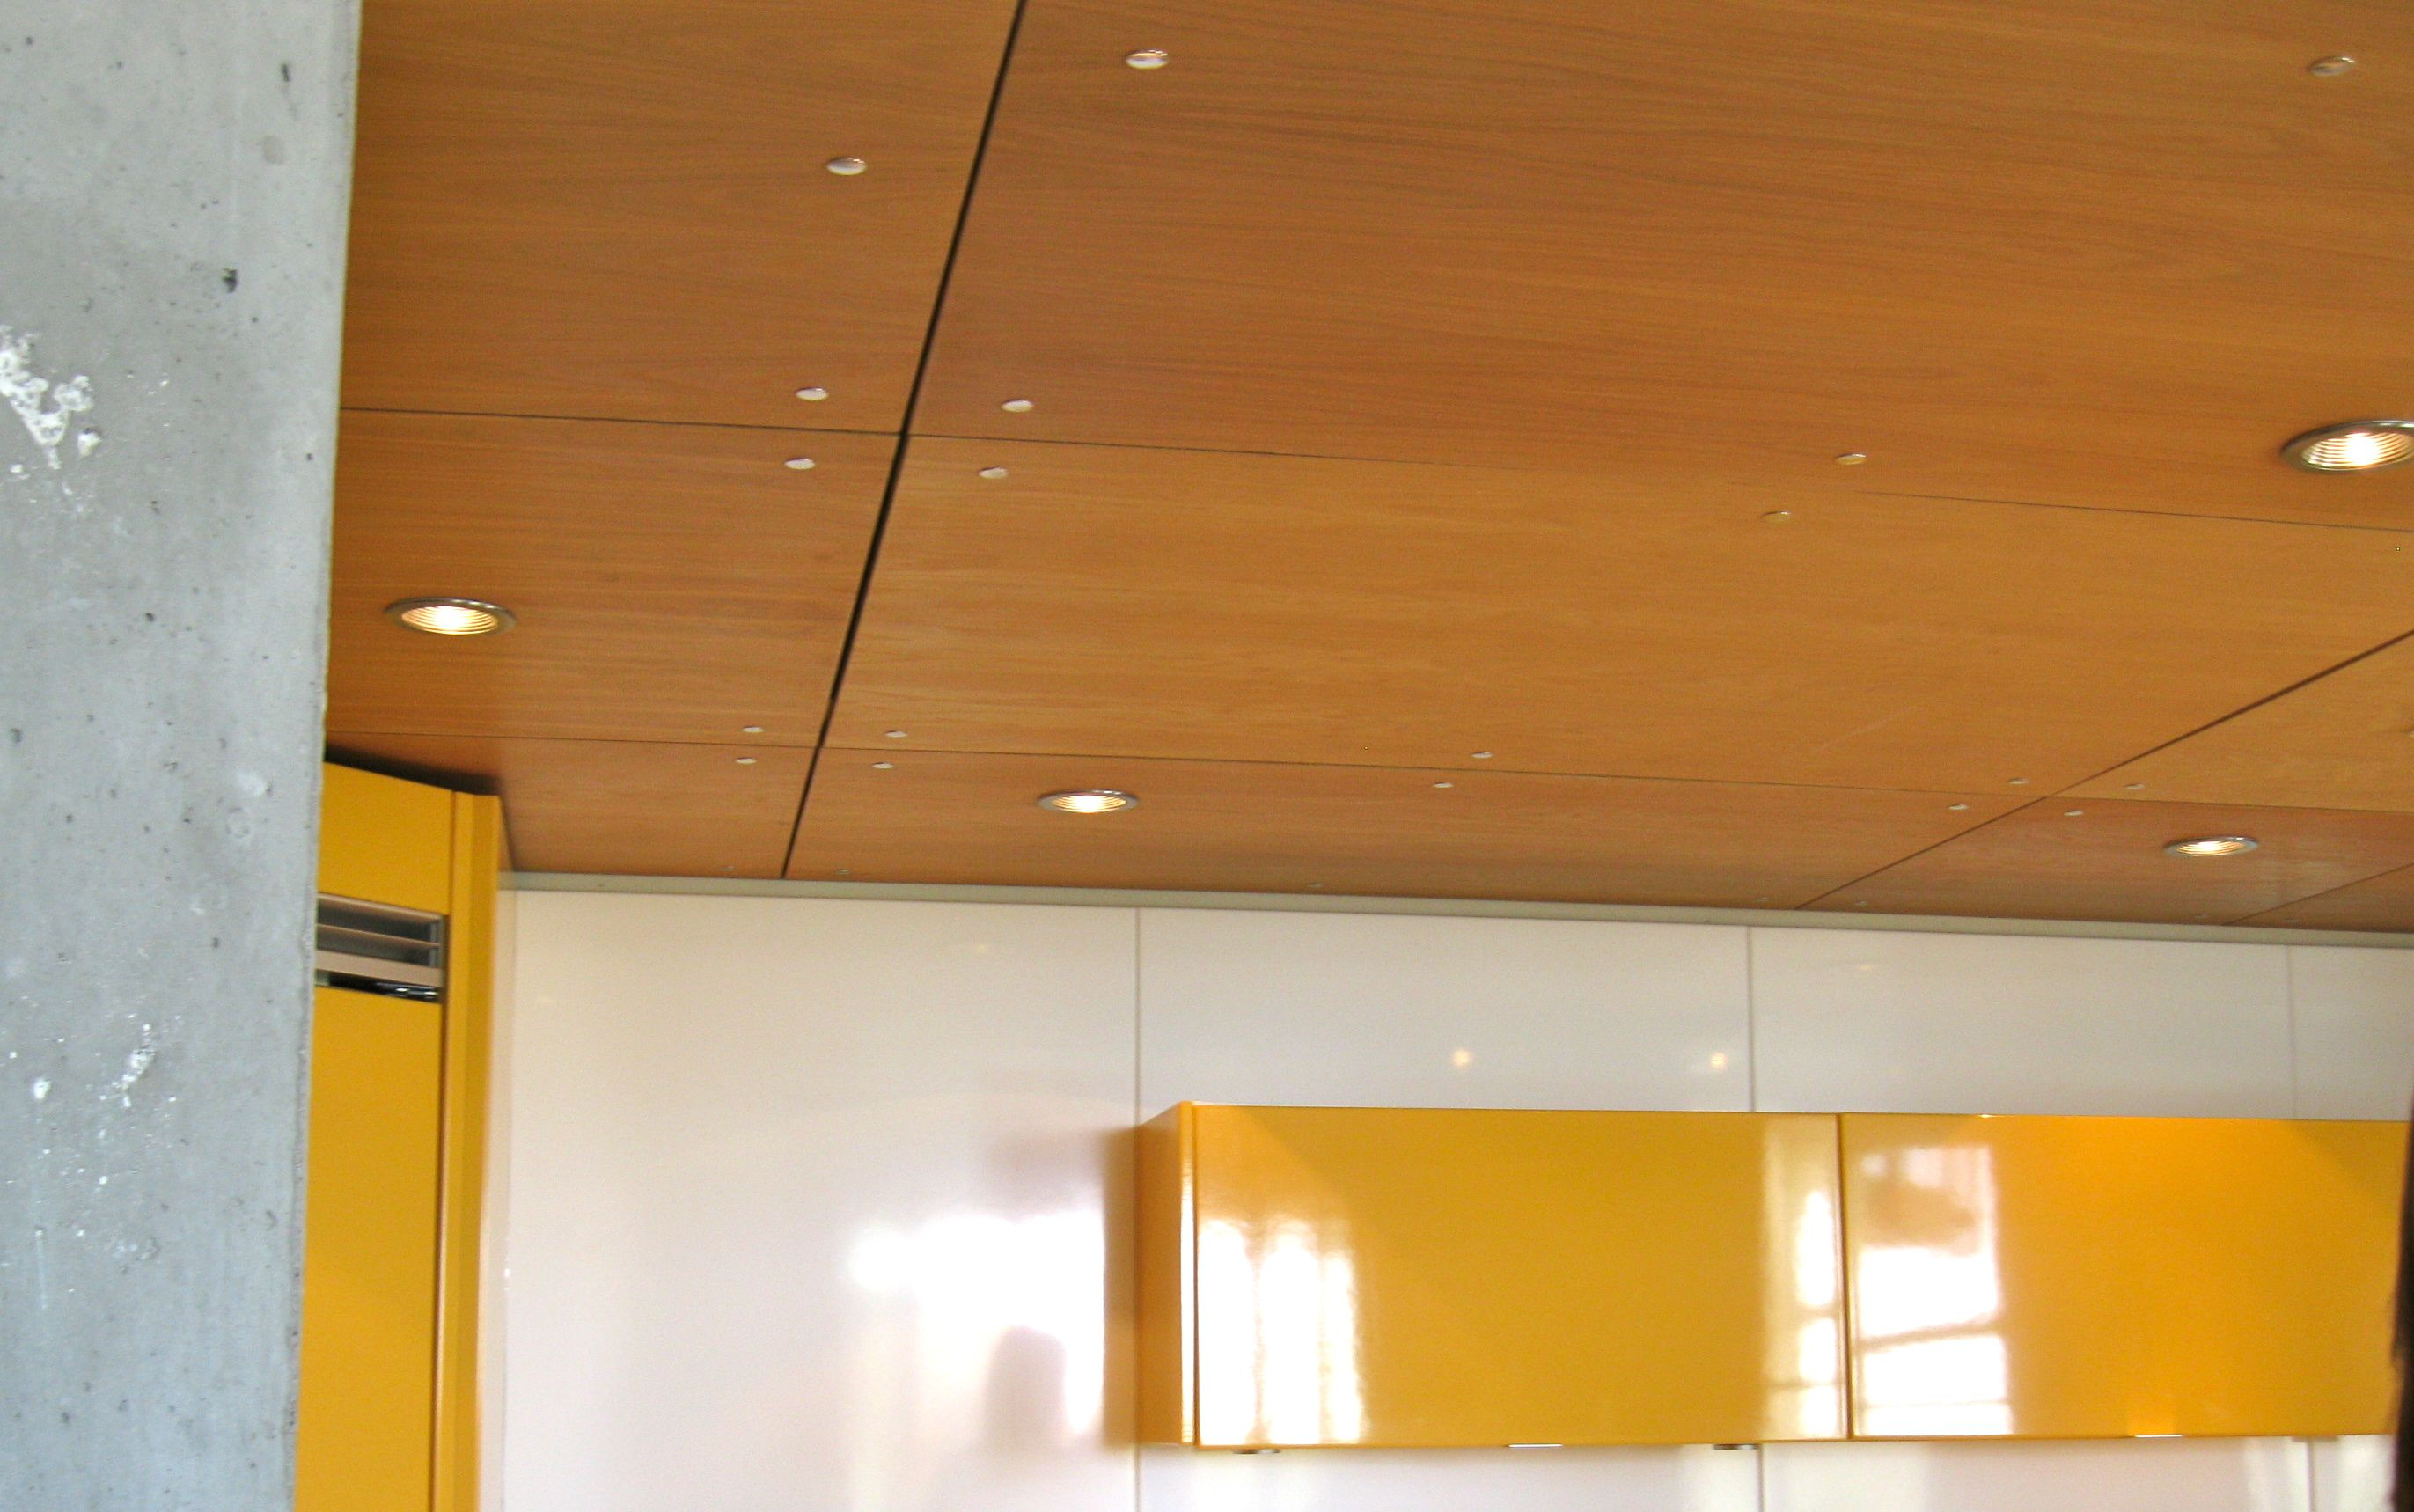 drop made with dropped cheap comfort ceilume s and easy lighting for ceiling light design recessed tiles